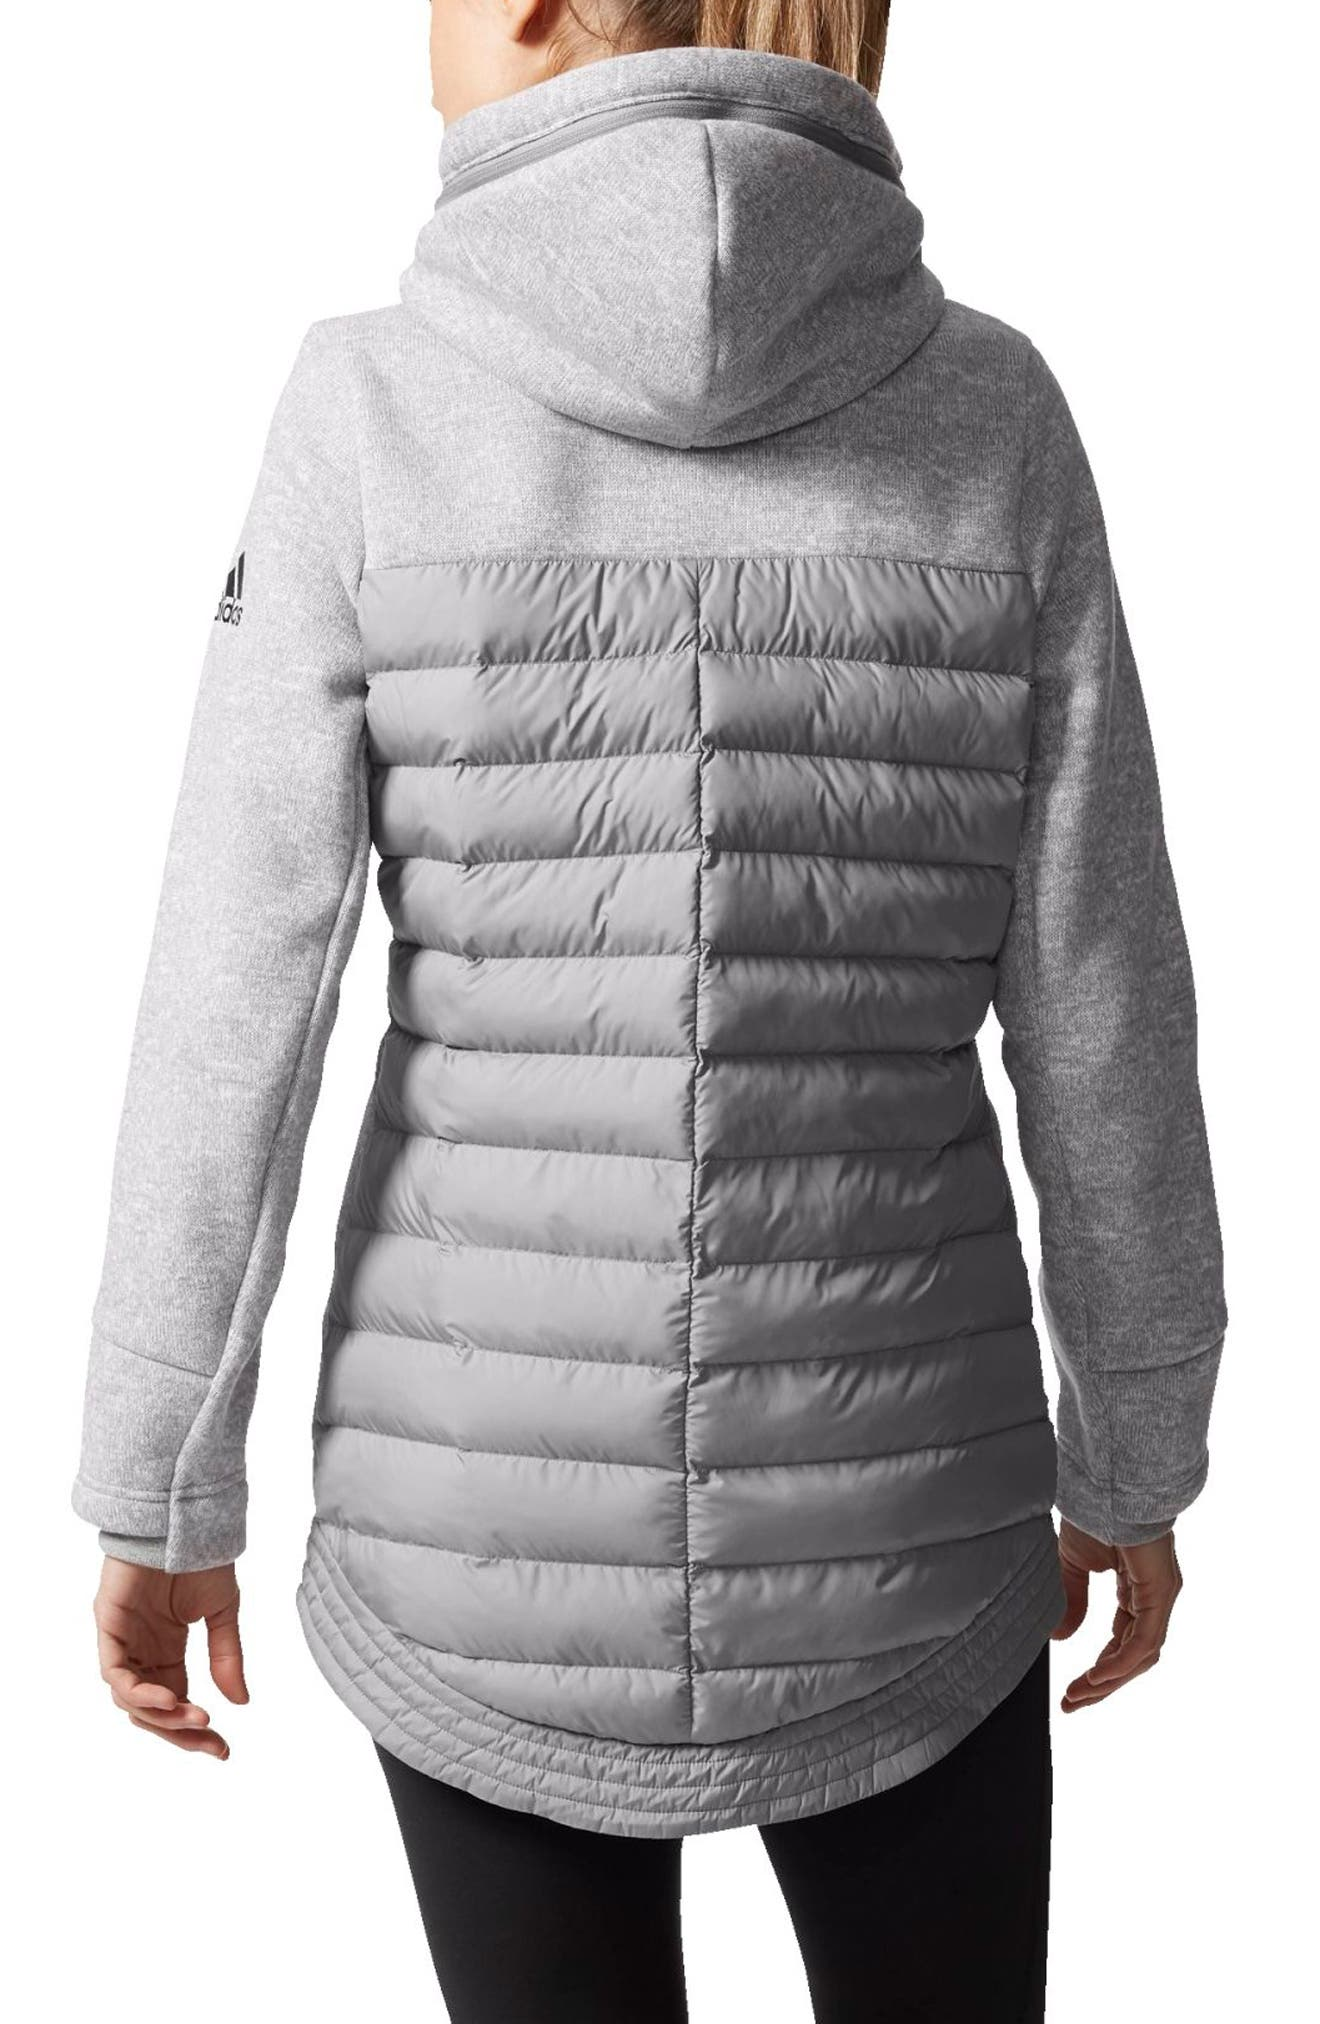 Nuvic Hybrid 2 Fleece/Puffer Jacket,                             Alternate thumbnail 3, color,